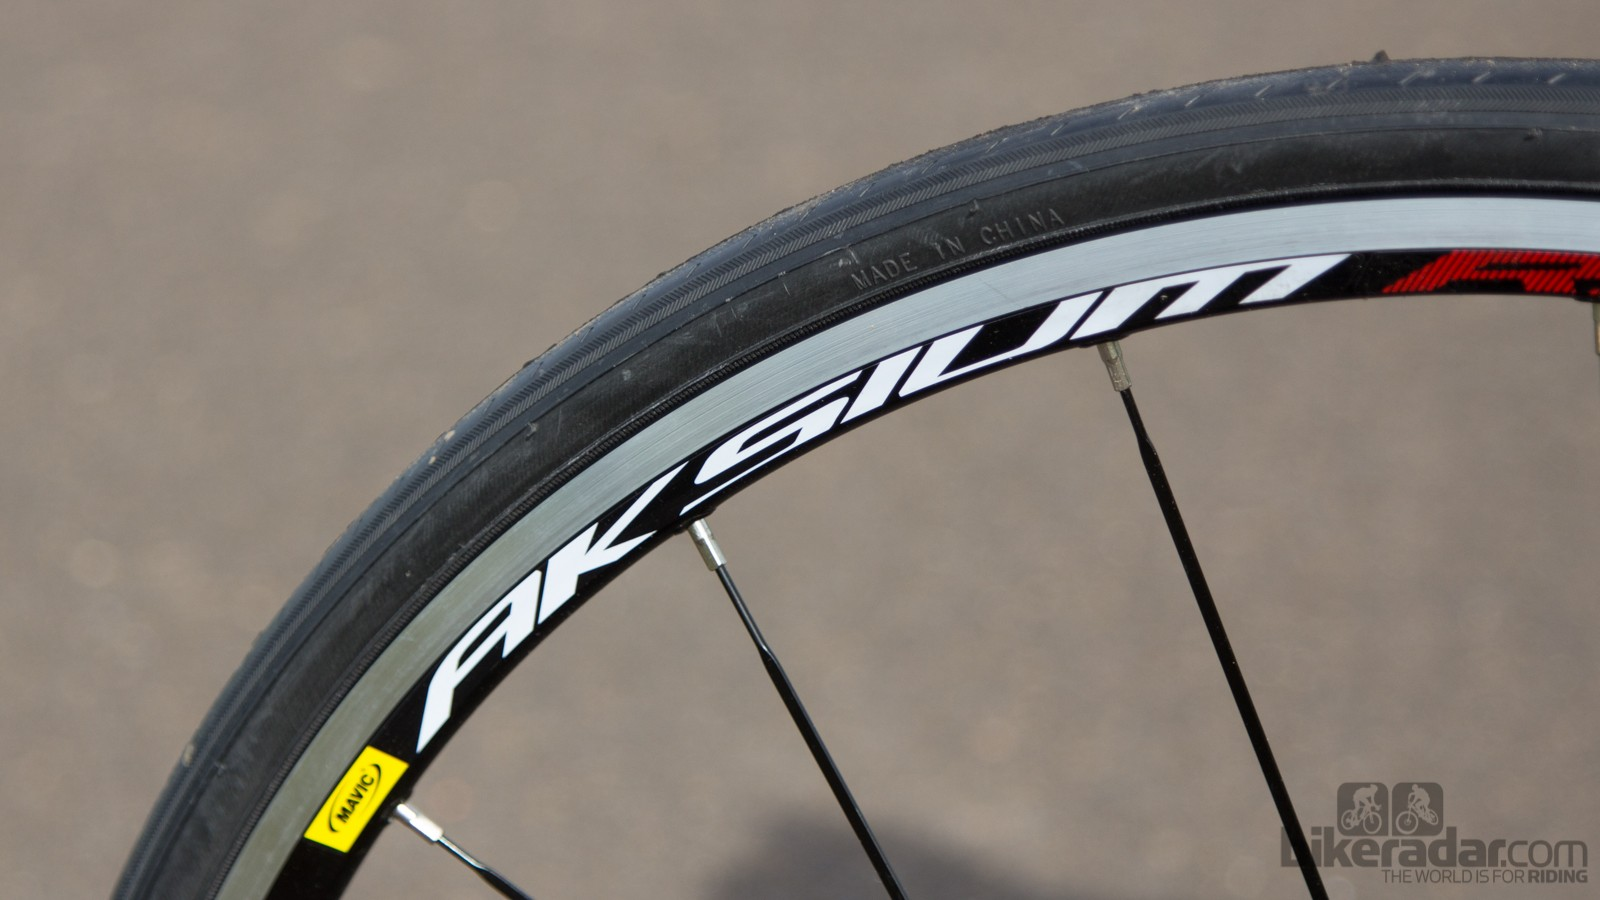 Mavic Aksium wheels are one of the highlights on this bike, providing proven durability and respectable performance - but they're only available at a $200 surcharge